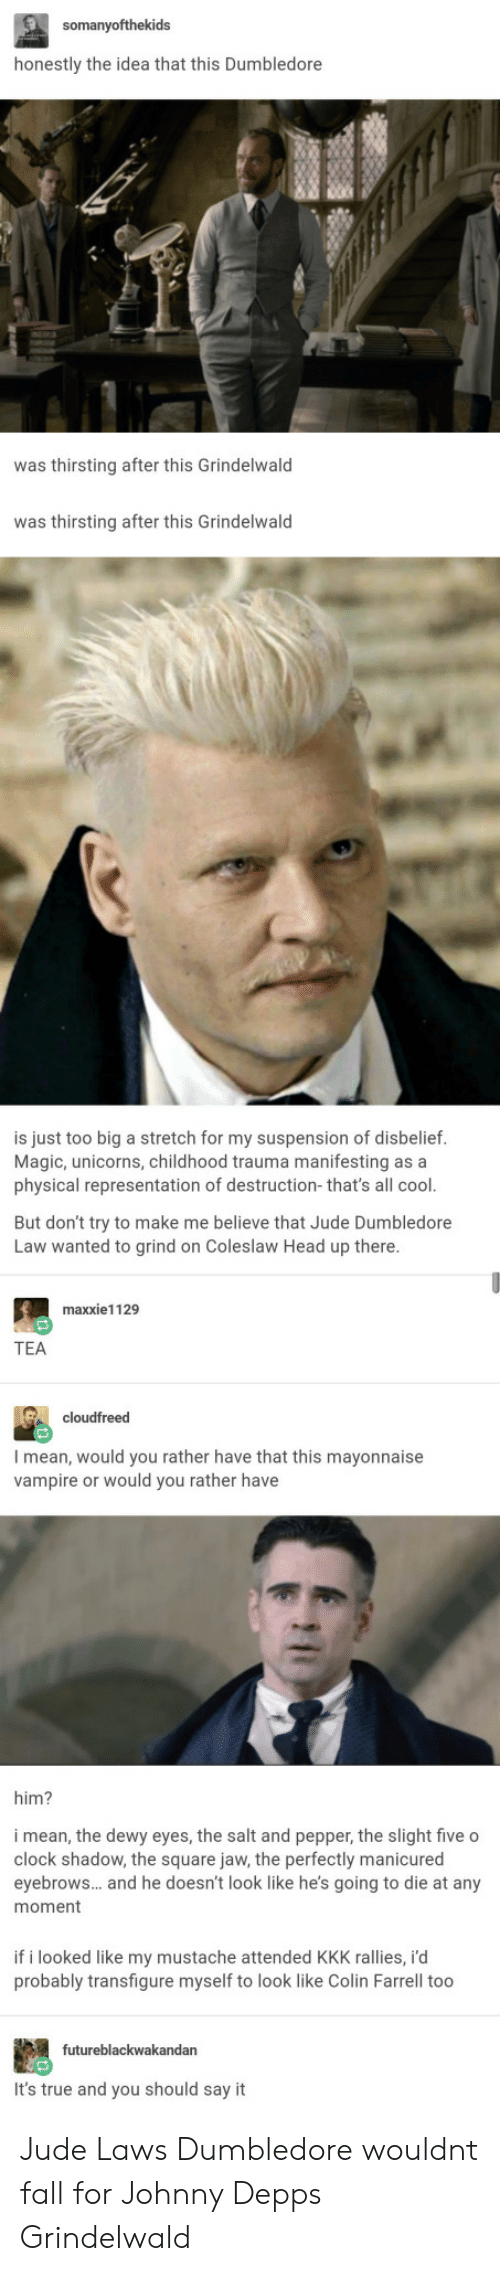 suspension: honestly the idea that this Dumbledore  was thirsting after this Grindelwald  was thirsting after this Grindelwald  is just too big a stretch for my suspension of disbelief.  Magic, unicorns, childhood trauma manifesting as a  physical representation of destruction-that's all cool.  But don't try to make me believe that Jude Dumbledore  Law wanted to grind on Coleslaw Head up there  maxxie1129  TEA  cloudfreed  I mean, would you rather have that this mayonnaise  vampire or would you rather have  him?  i mean, the dewy eyes, the salt and pepper, the slight five o  clock shadow, the square jaw, the perfectly manicured  eyebrows... and he doesn't look like he's going to die at any  moment  if i looked like my mustache attended KKK rallies, i'd  probably transfigure myself to look like Colin Farrell too  futureblackwakandan  It's true and you should say it Jude Laws Dumbledore wouldnt fall for Johnny Depps Grindelwald